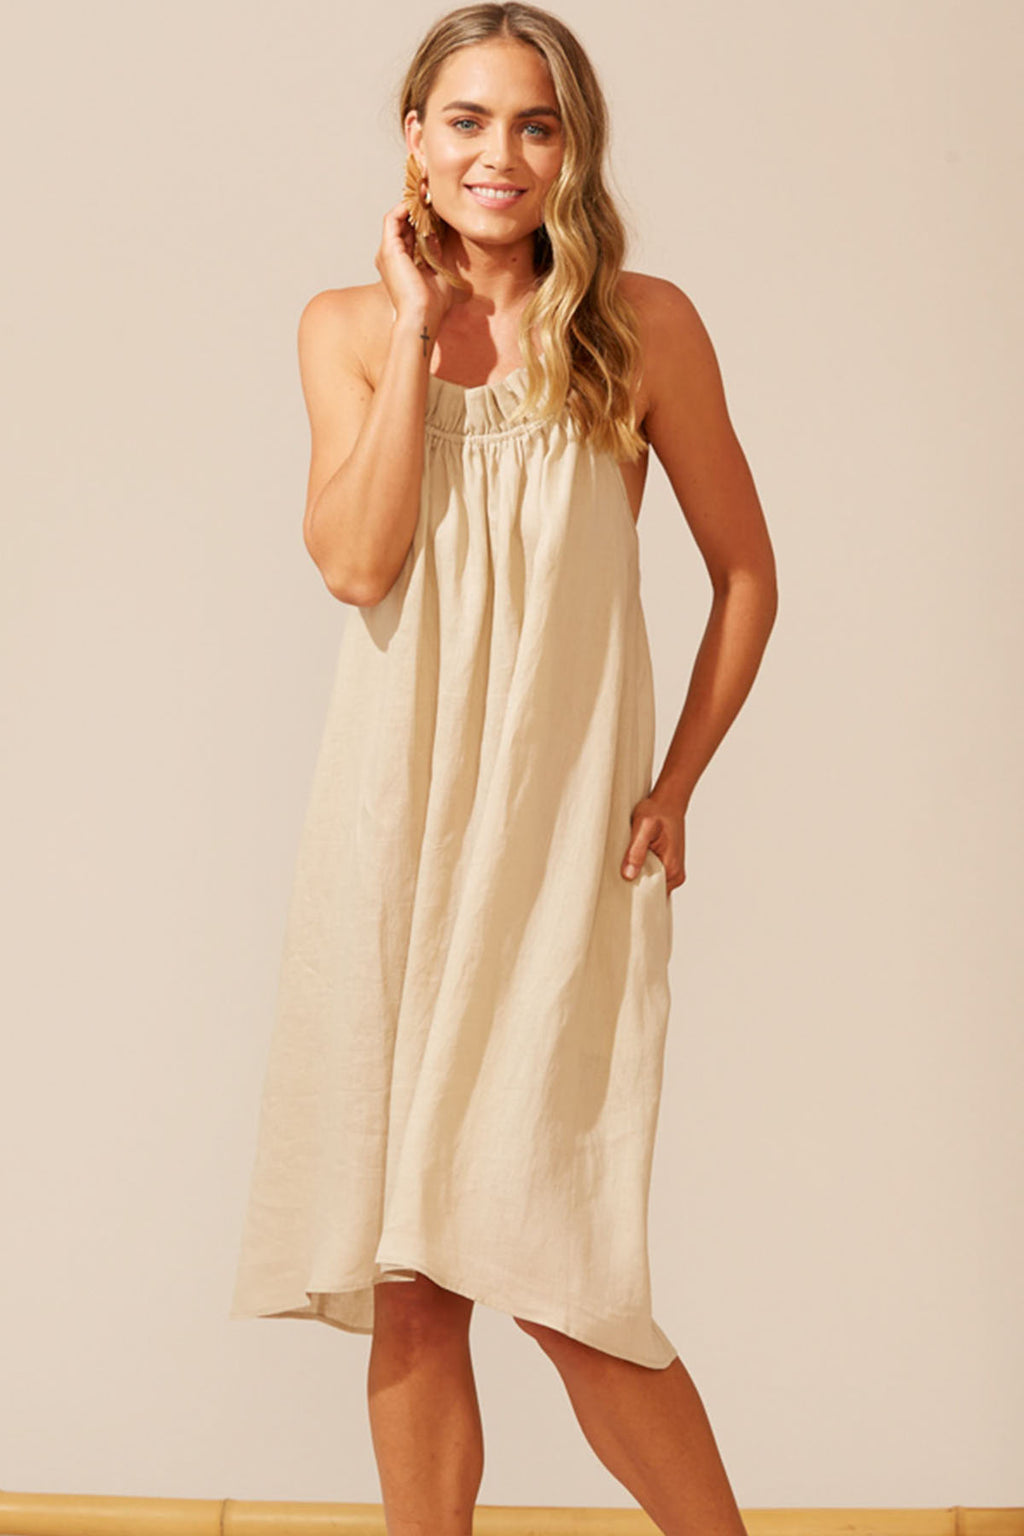 Martinique Frill Dress - Sand - The Bohemian Corner